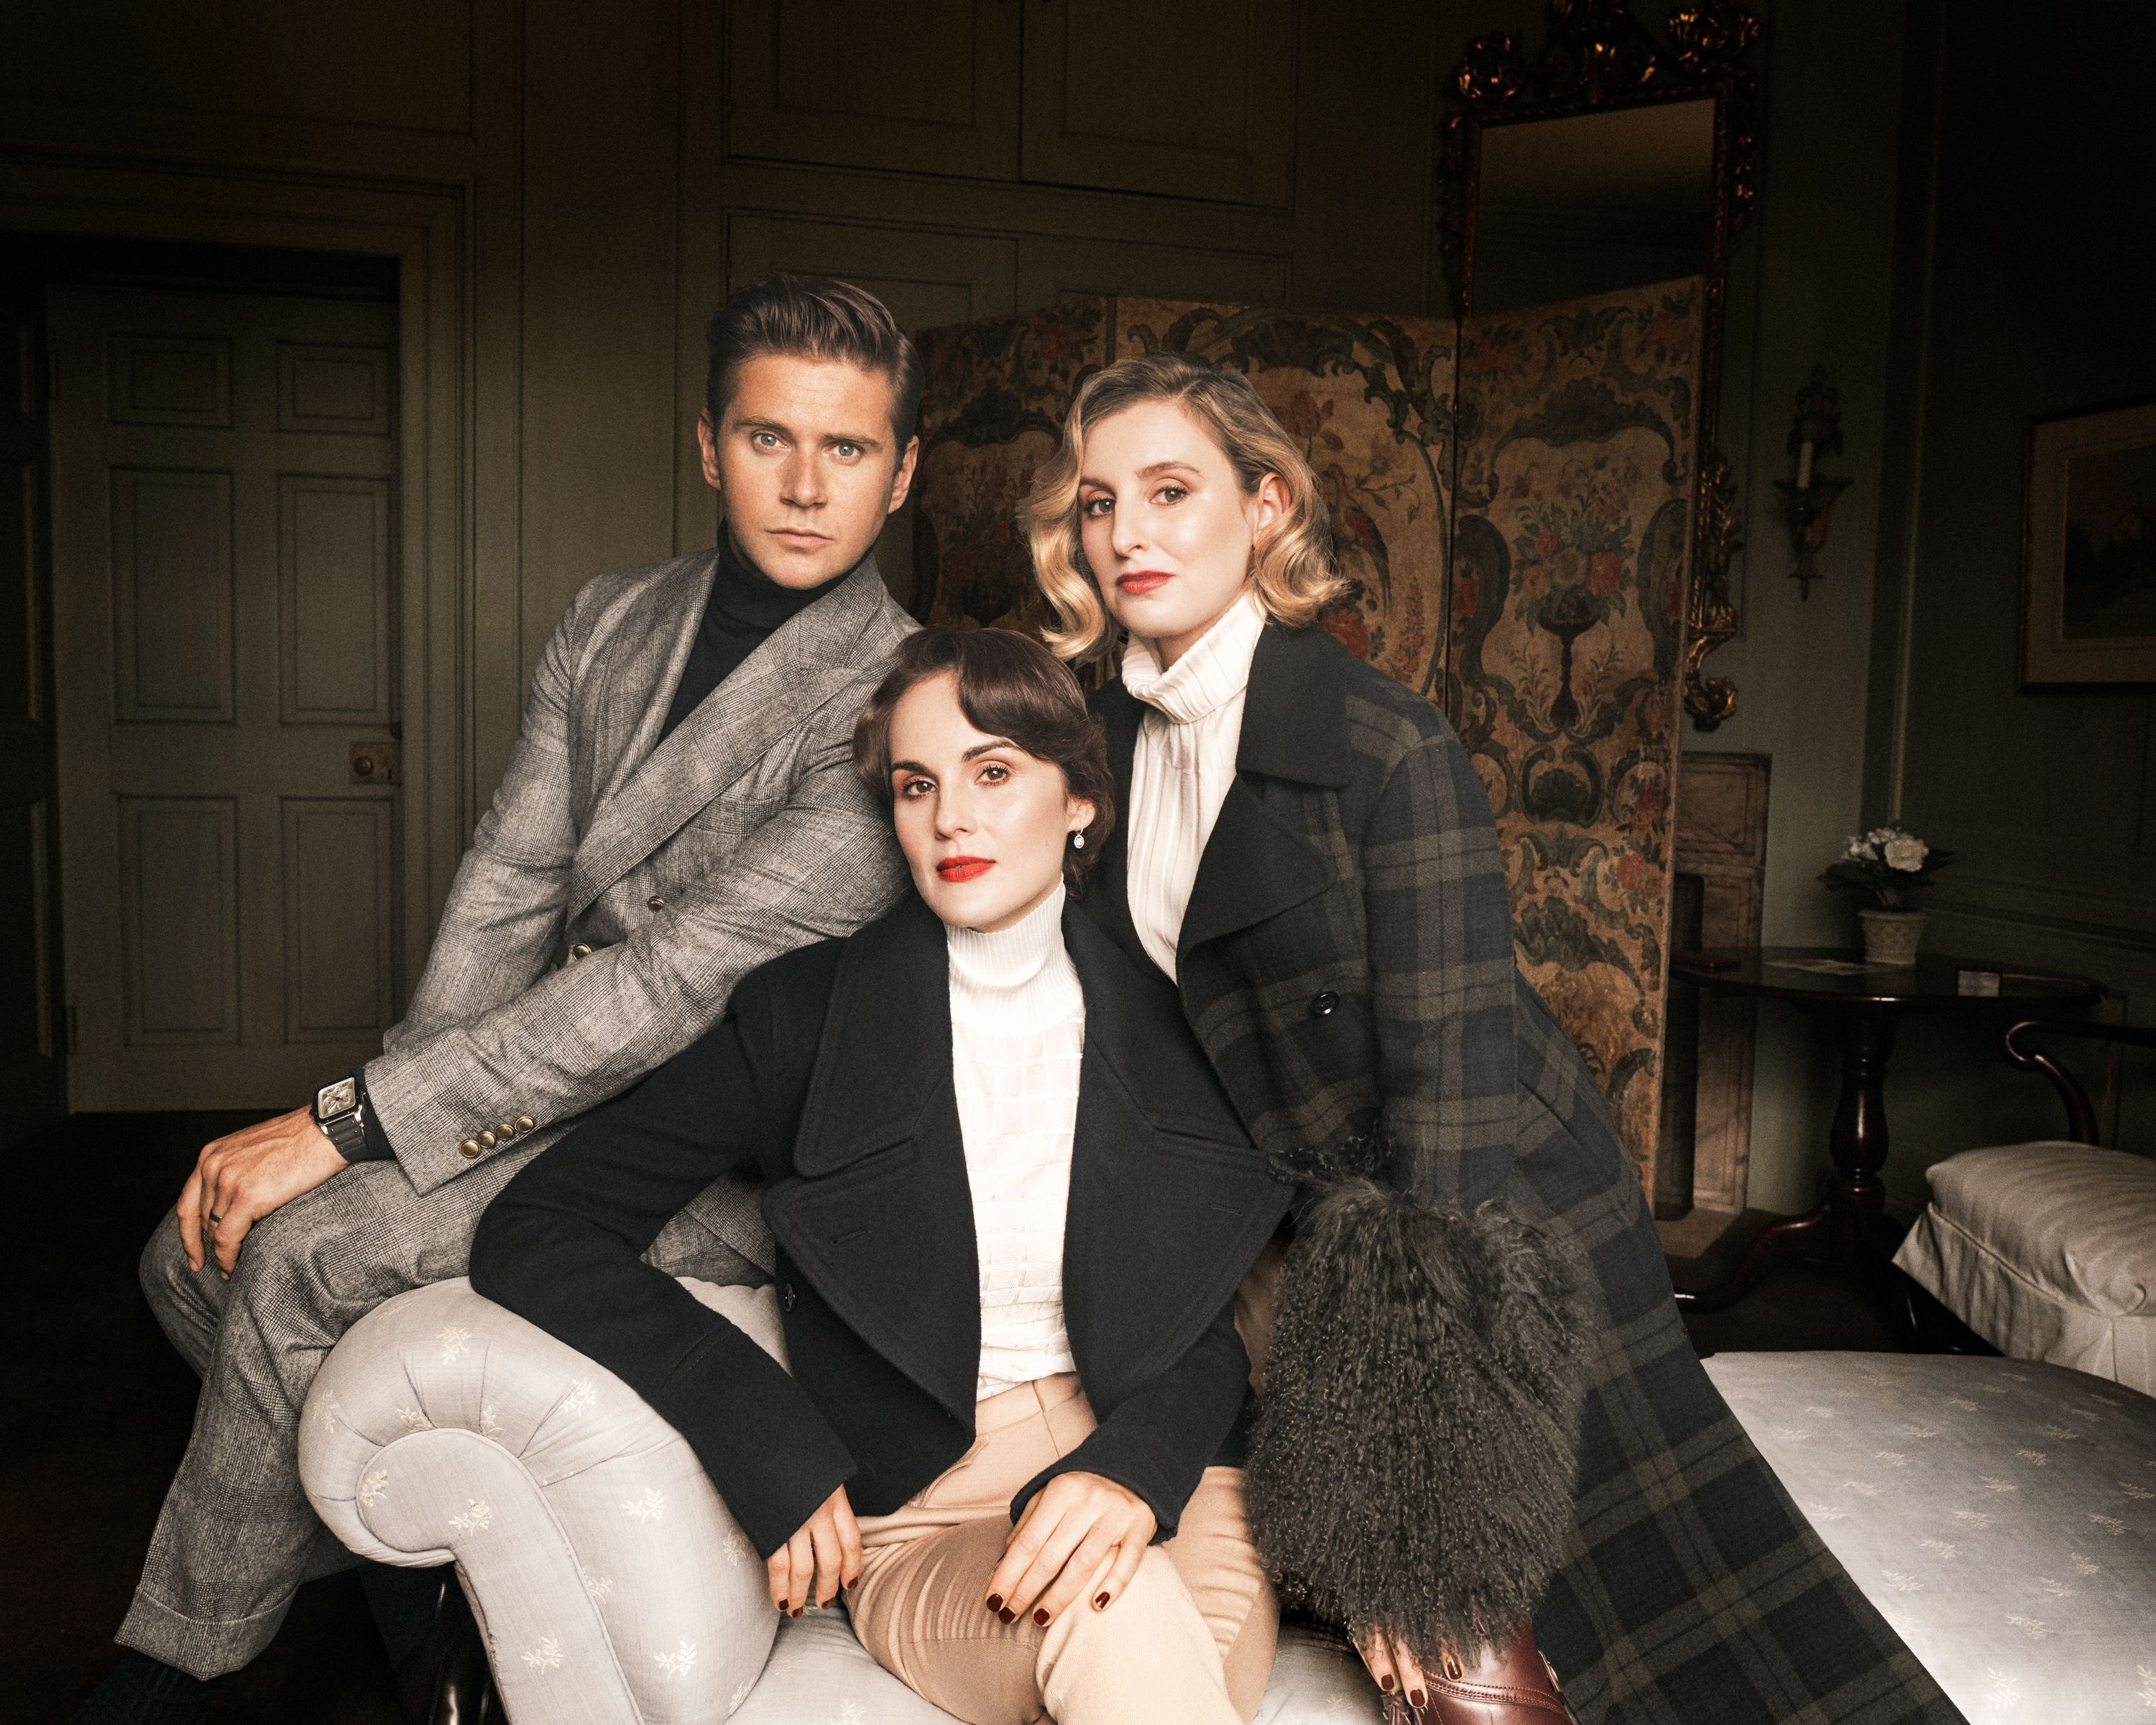 Michelle Dockery, Allen Leech, and Laura Carmichael's Grand Return to Downton Abbey